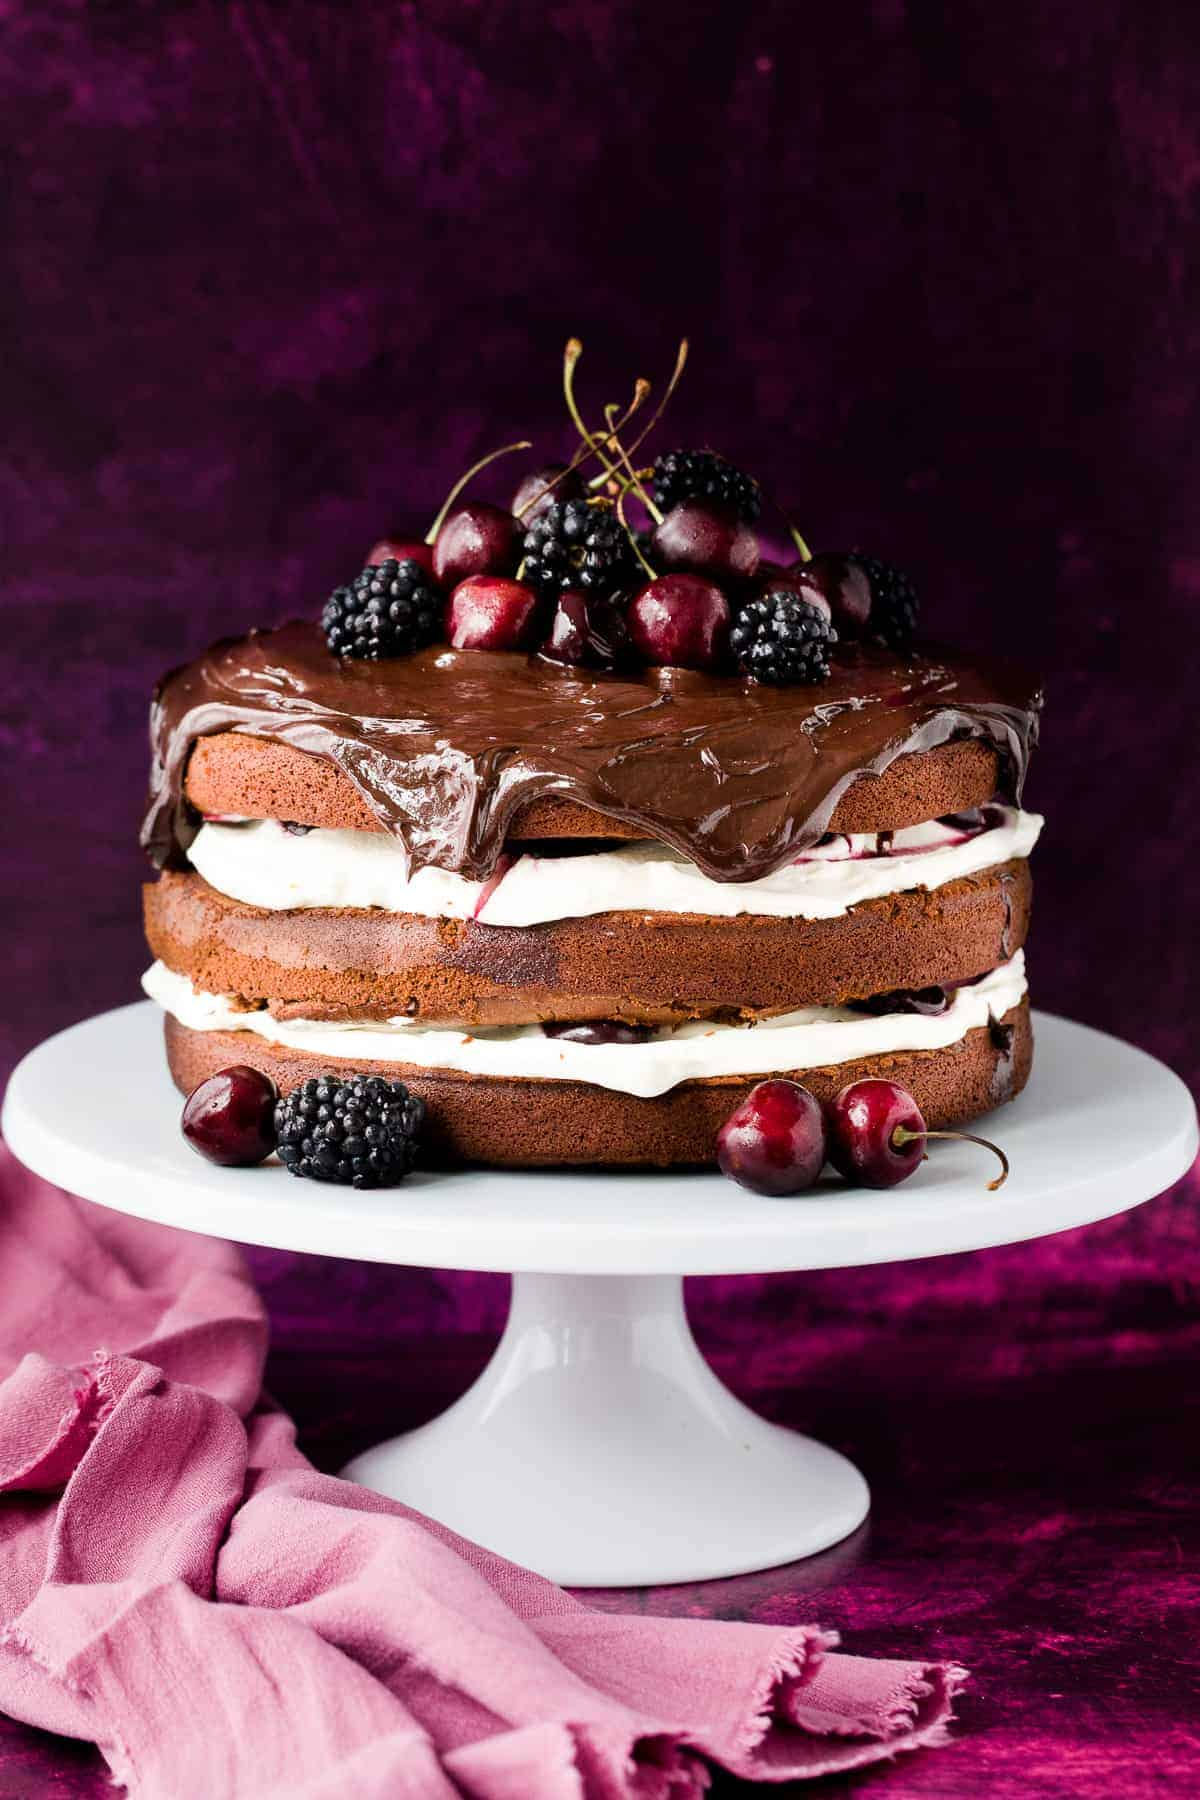 A 3 layer black forest cake made from chocolate sponge with a cream and cherry layer and dark chocolate ganache on top.